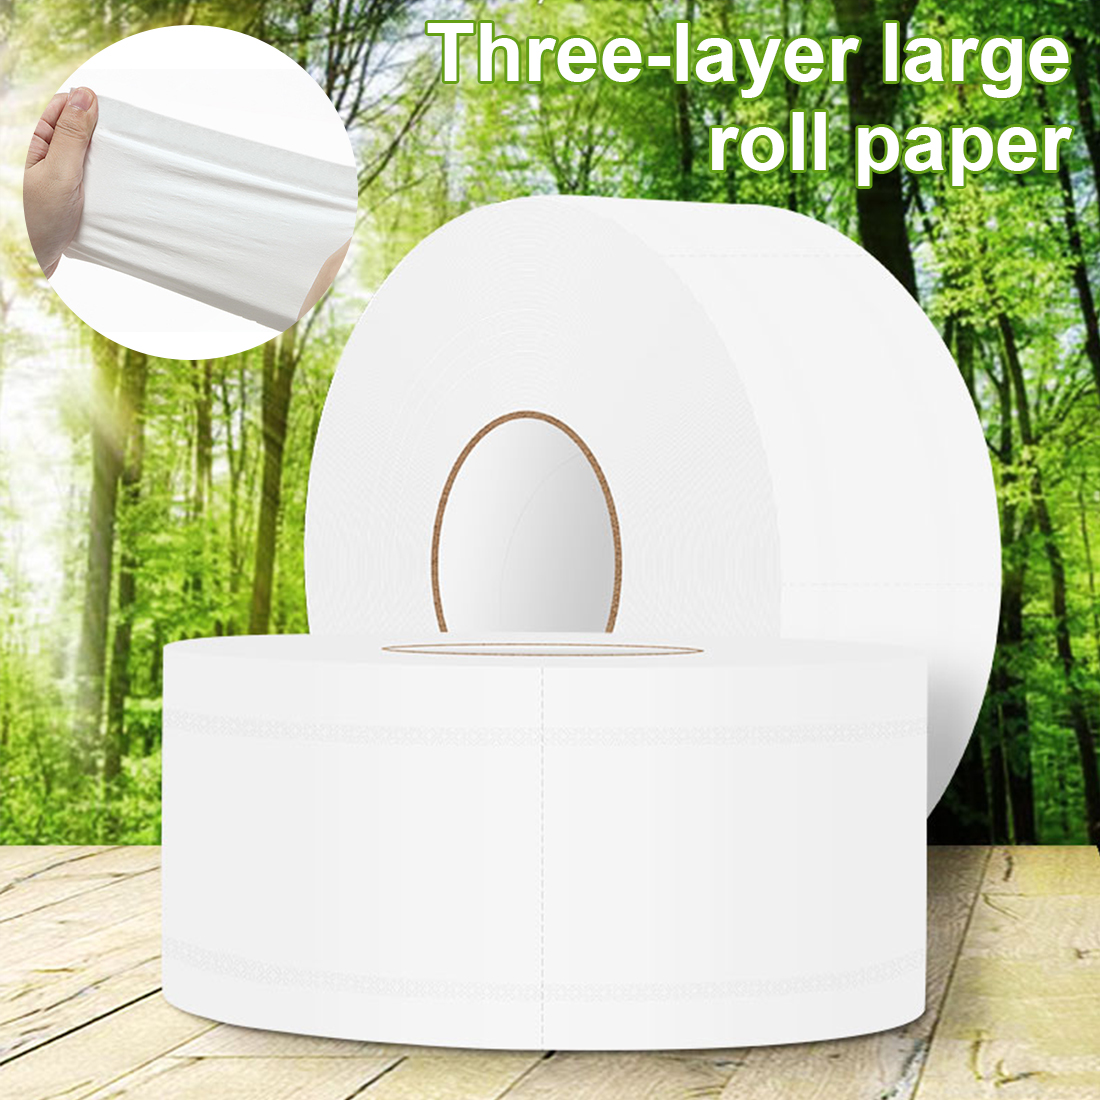 2pcs 580g/Roll 900+sheets Jumbo Roll White Toilet Tissue Household Roll Paper Hollow Replacement Roll Paper Soft Toilet Paper